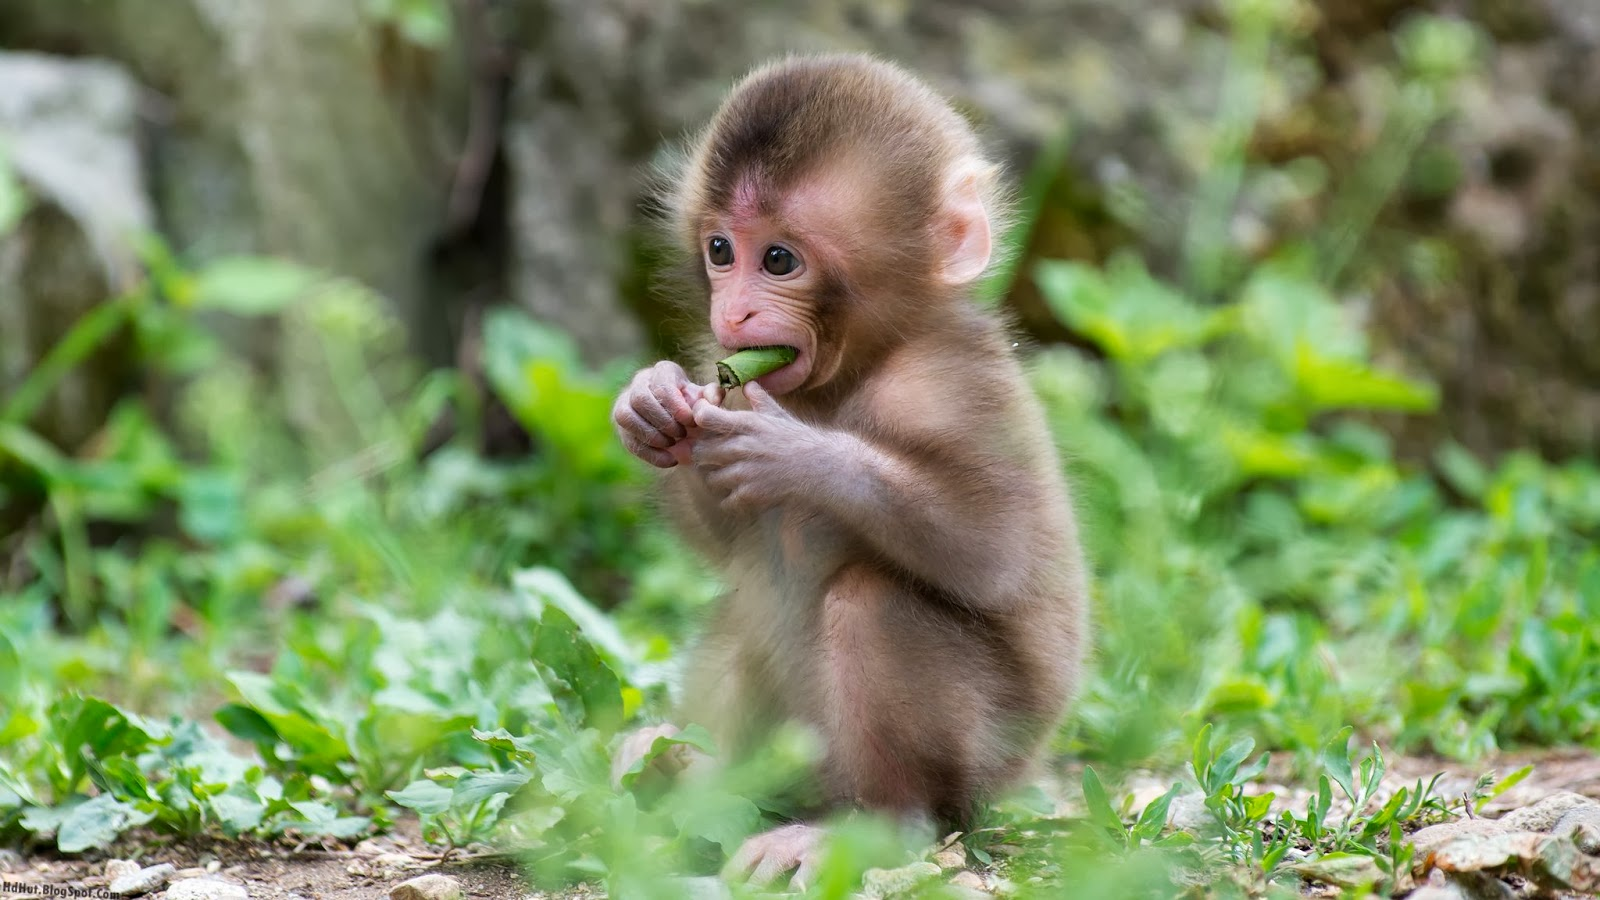 Most Cute And Beautiful Monkey Wallpapers In Hd